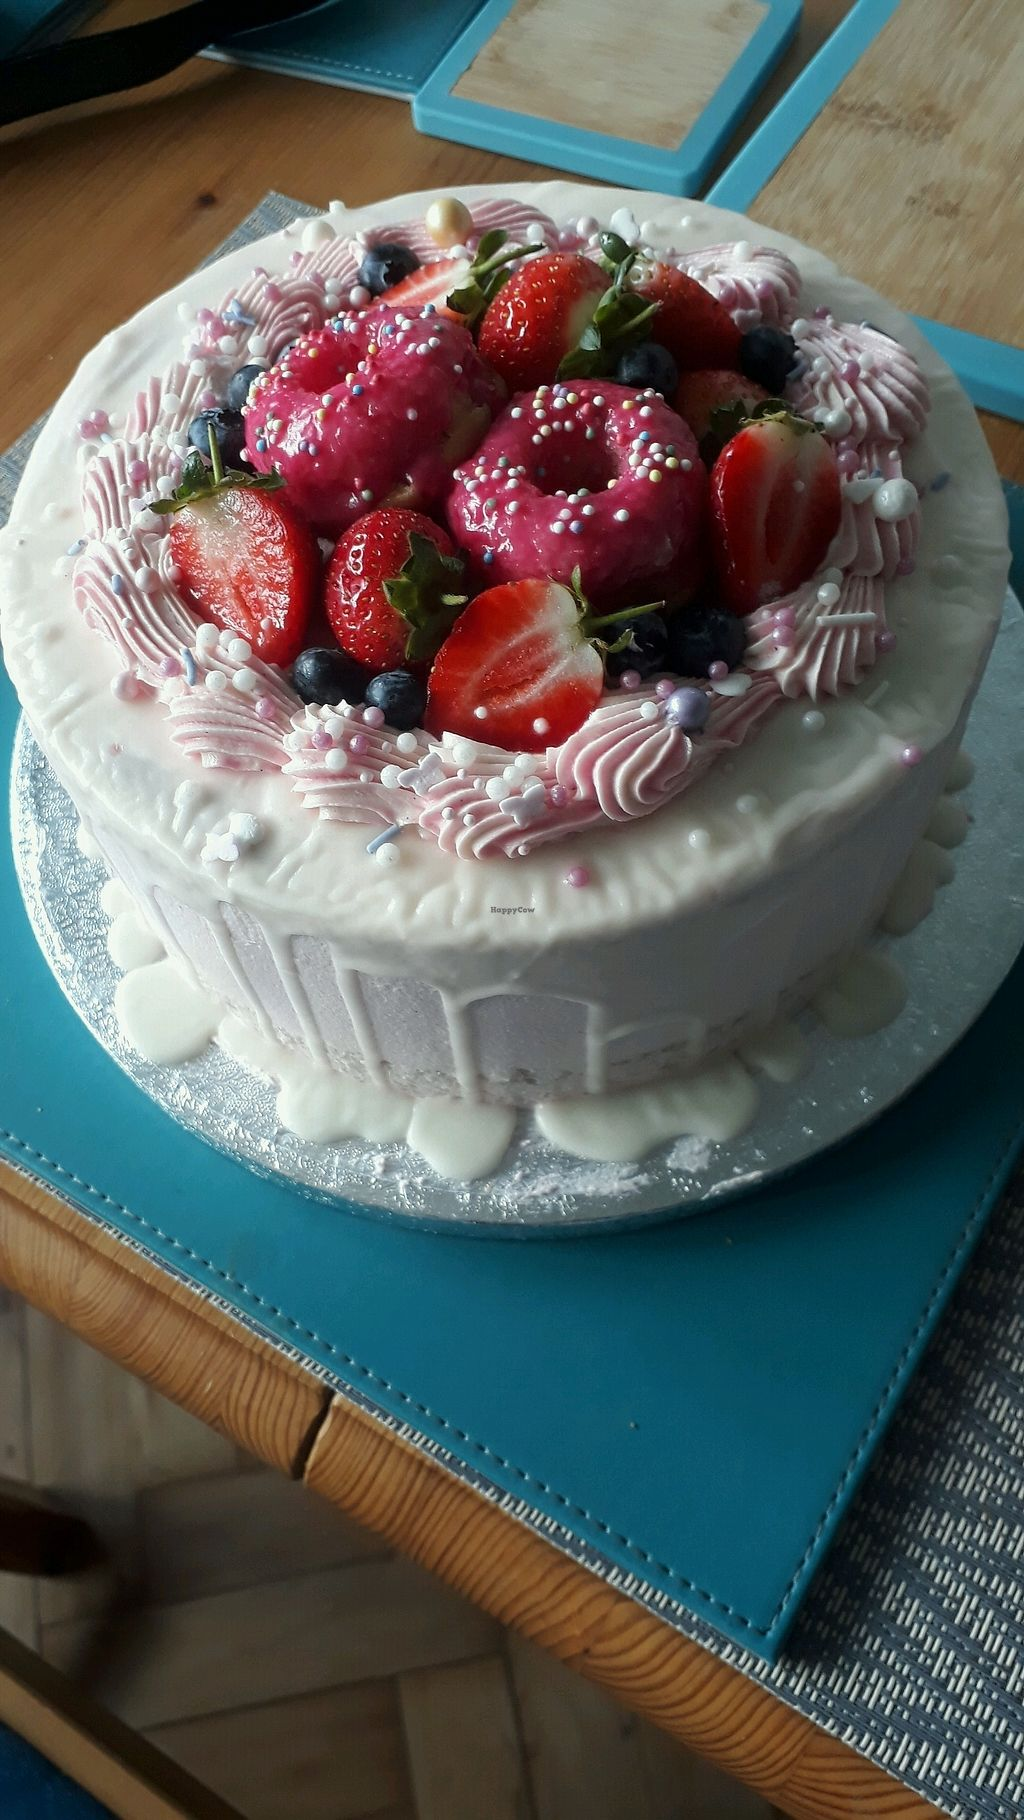 "Photo of Vida Bakery  by <a href=""/members/profile/LauraMu"">LauraMu</a> <br/>A bespoke cake we ordered <br/> January 5, 2018  - <a href='/contact/abuse/image/84964/343330'>Report</a>"